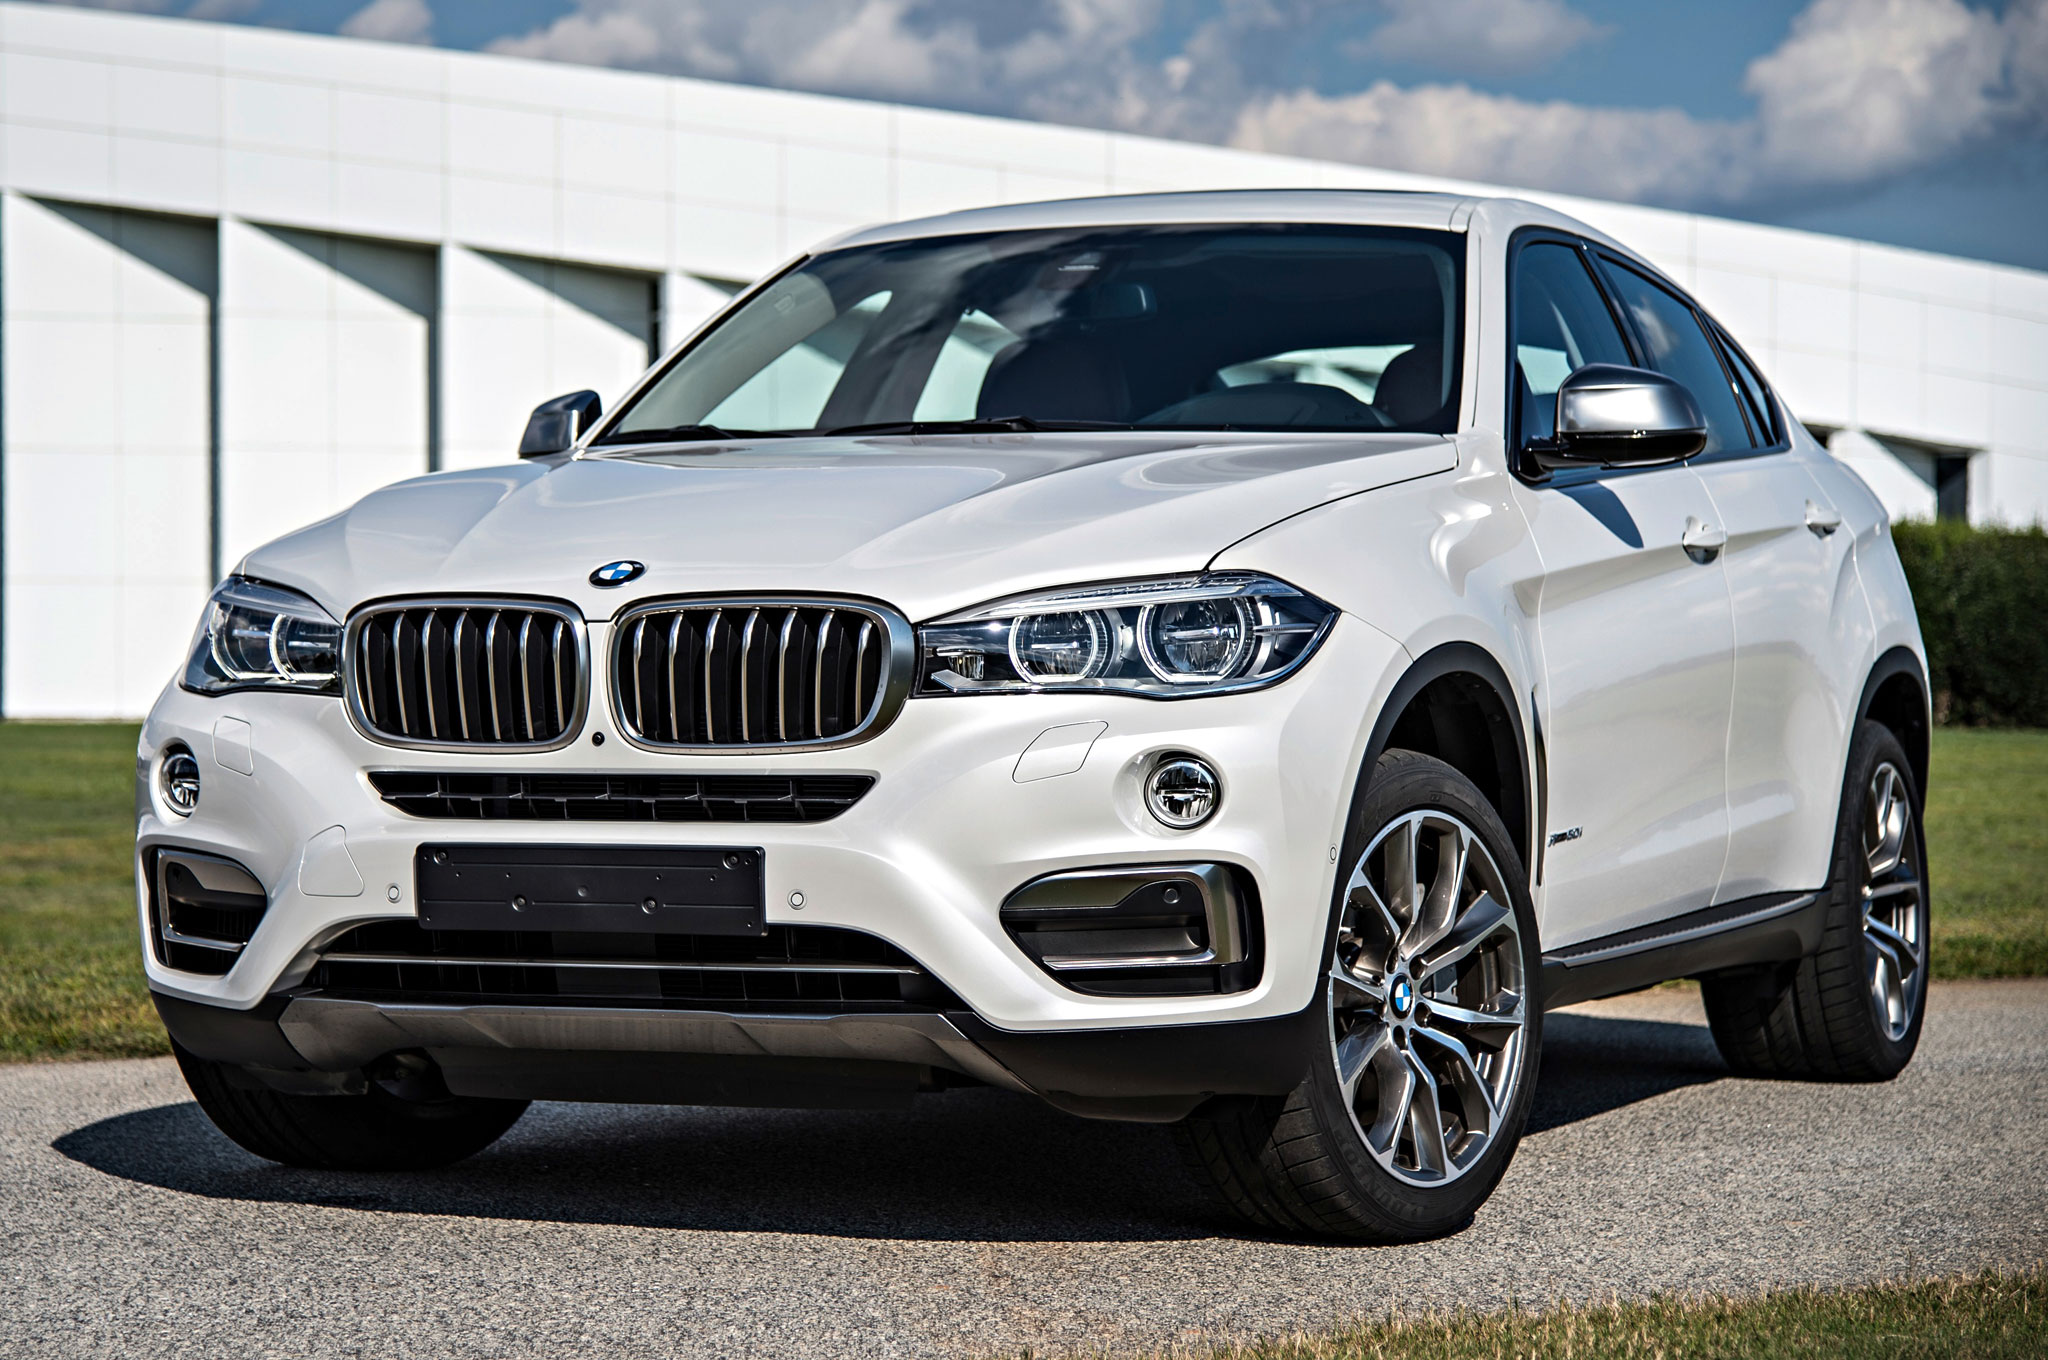 2014 Bmw X6 Xdrive50i Review Autos Post